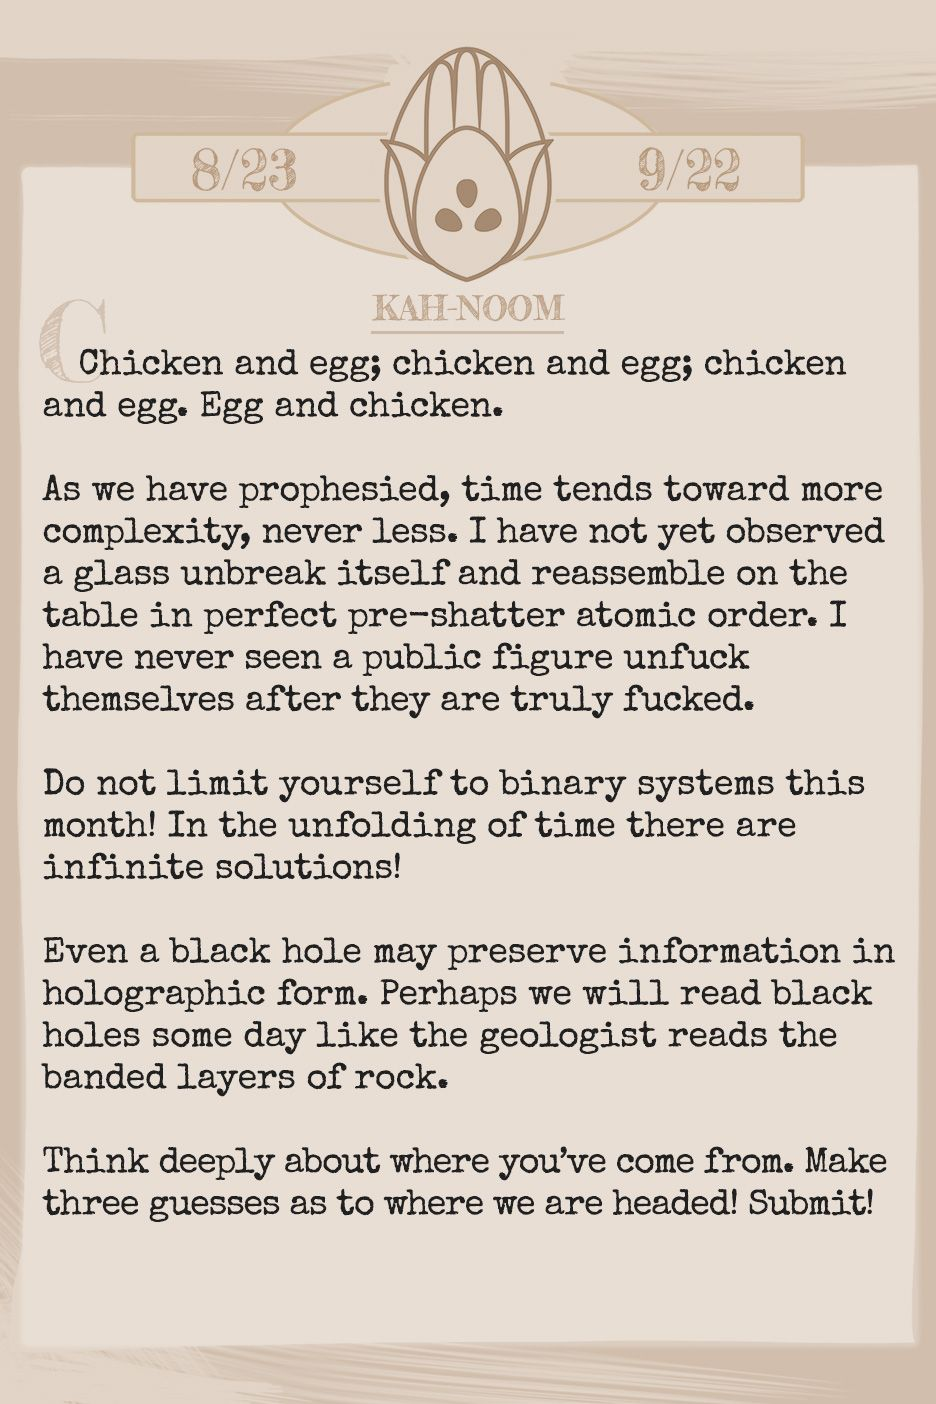 March 2019 Horoscope (Old sign: Virgo) Chicken and egg; chicken and egg; chicken and egg. Egg and chicken. As we have prophesied, time tends toward more complexity, never less. I have not yet observed a glass unbreak itself and reassemble on the table in perfect pre-shatter atomic order. I have never seen a public figure unfuck themselves after they are truly fucked. Do not limit yourself to binary systems this month! In the unfolding of time there are infinite solutions! Even a black hole may preserve information in holographic form. Perhaps we will read black holes some day like the geologist reads the banded layers of rock. Think deeply about where you've come from. Make three guesses as to where we are headed! Submit!